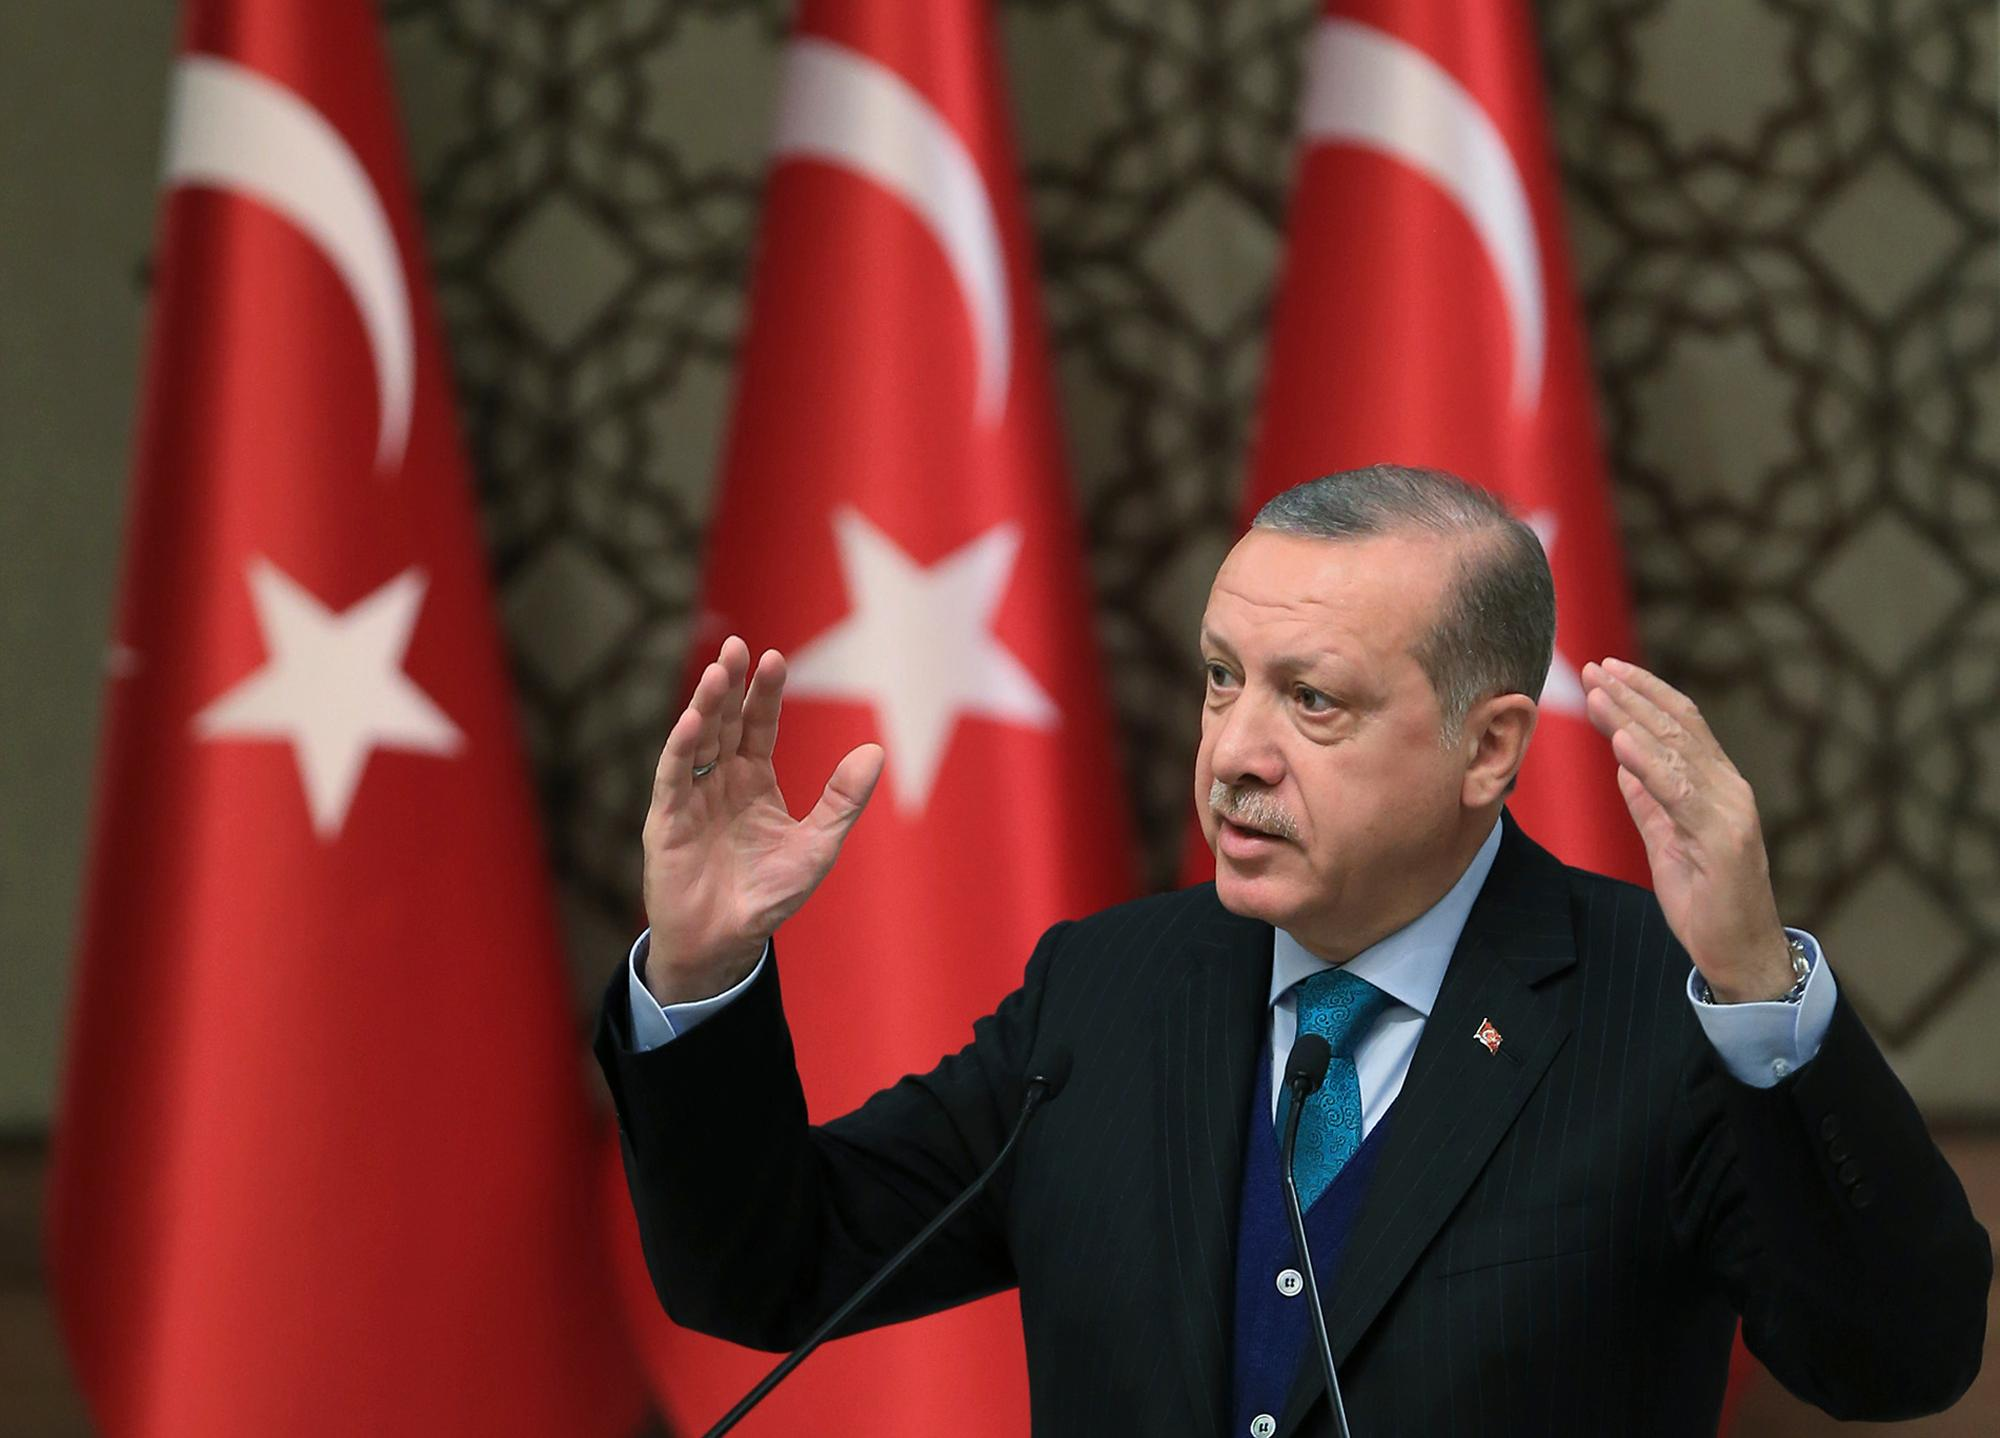 "Turkey's President Recep Tayyip Erdogan, gestures as he delivers a speech at an event in Ankara, Turkey, Tuesday, Dec. 12, 2017. Leaders and high-ranking officials of Muslim countries will meet Wednesday Dec. 13, in Istanbul for an extraordinary summit to discuss the U.S. recognition of Jerusalem as Israel's capital. Erdogan has been vehemently critical of the U.S. move and said the leaders would relay a ""strong message."" (Pool Photo via AP)"